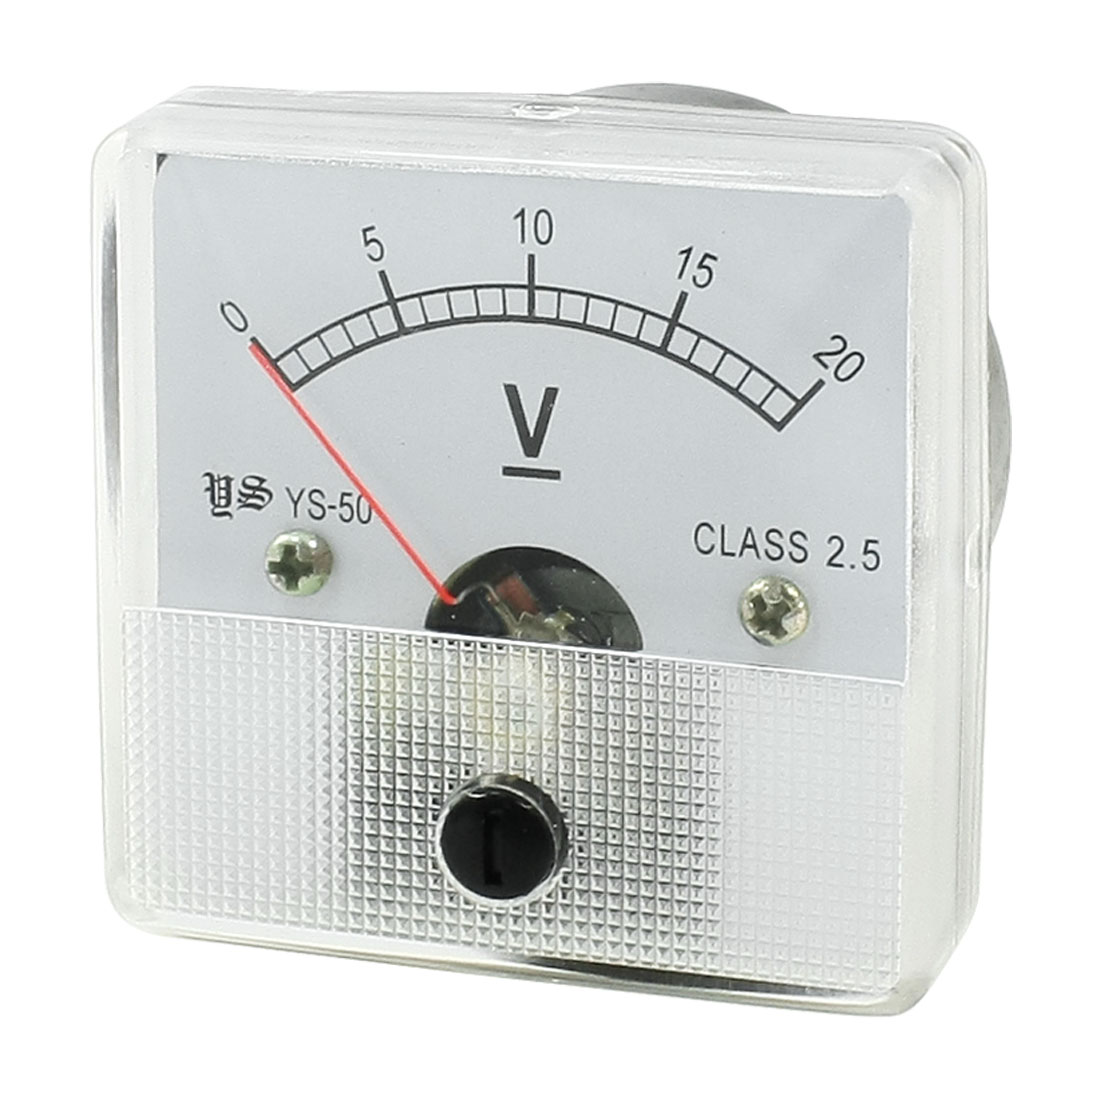 Class 2.5 Accuracy DC 0-20V Analog Voltage Panel Meter YS-50